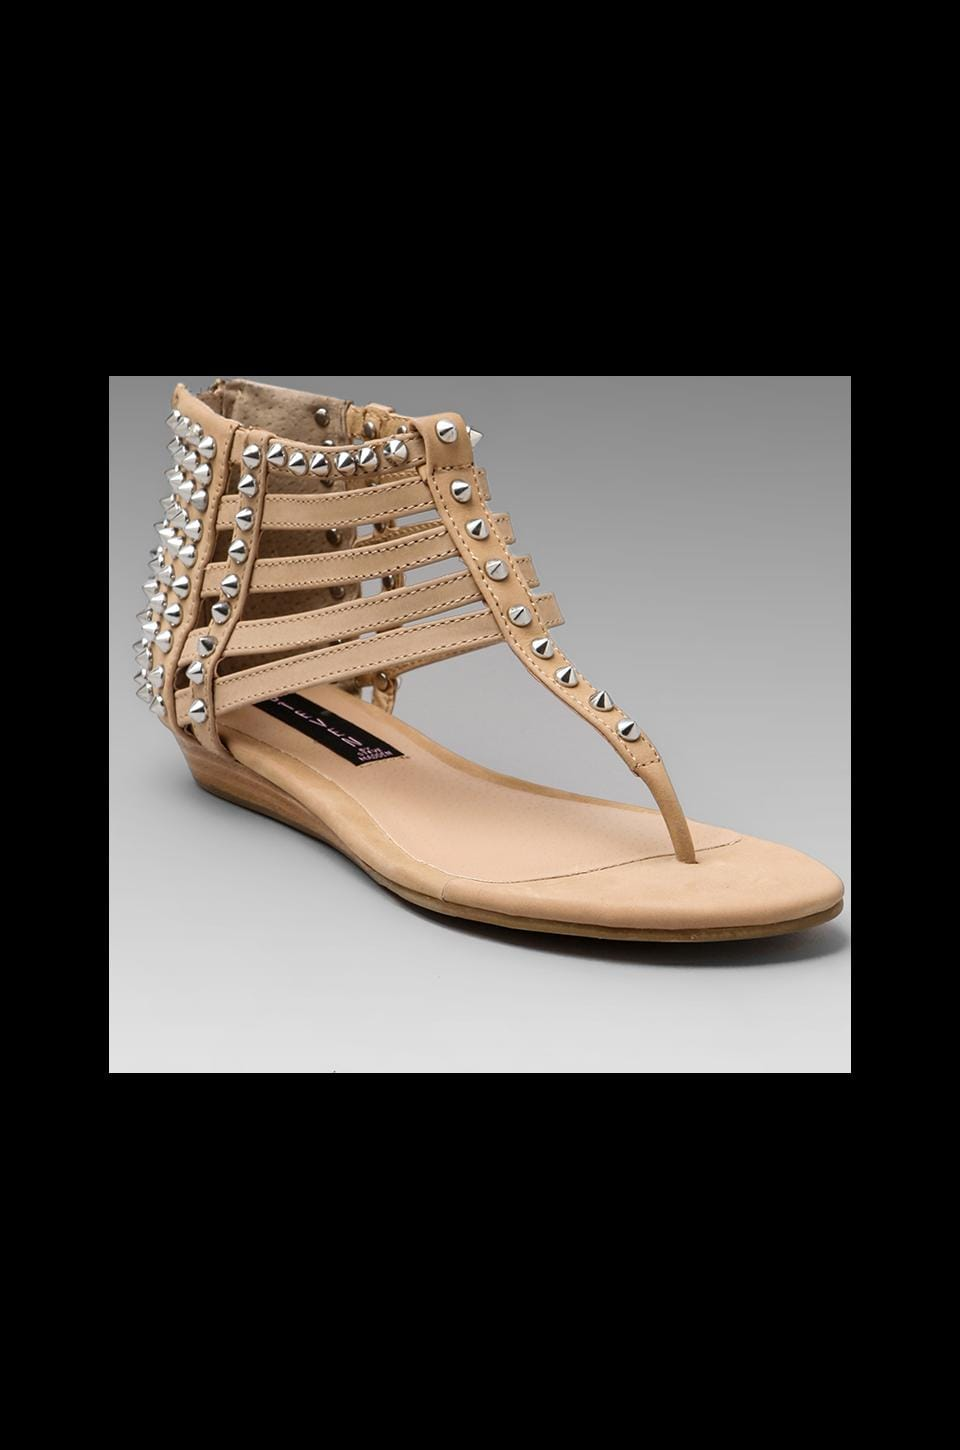 Steven Indyana Sandal in Blush Leather